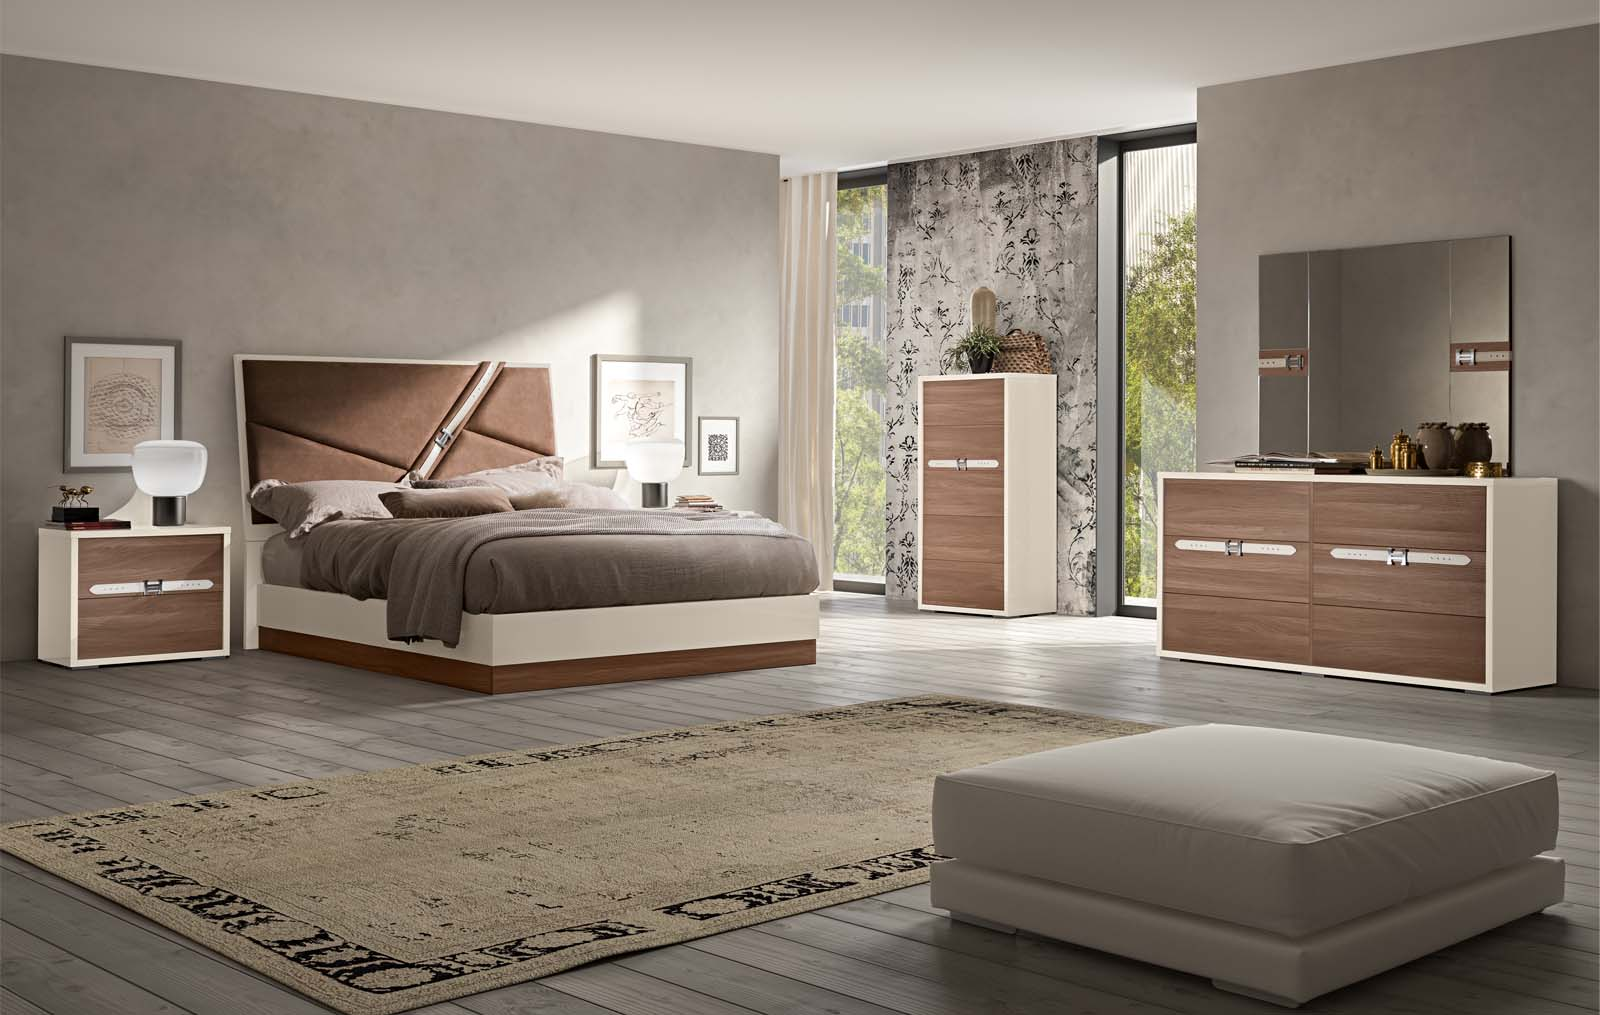 Italian Furniture Bedroom Made In Italy Wood Designer Bedroom Furniture Sets With Optional Storage System